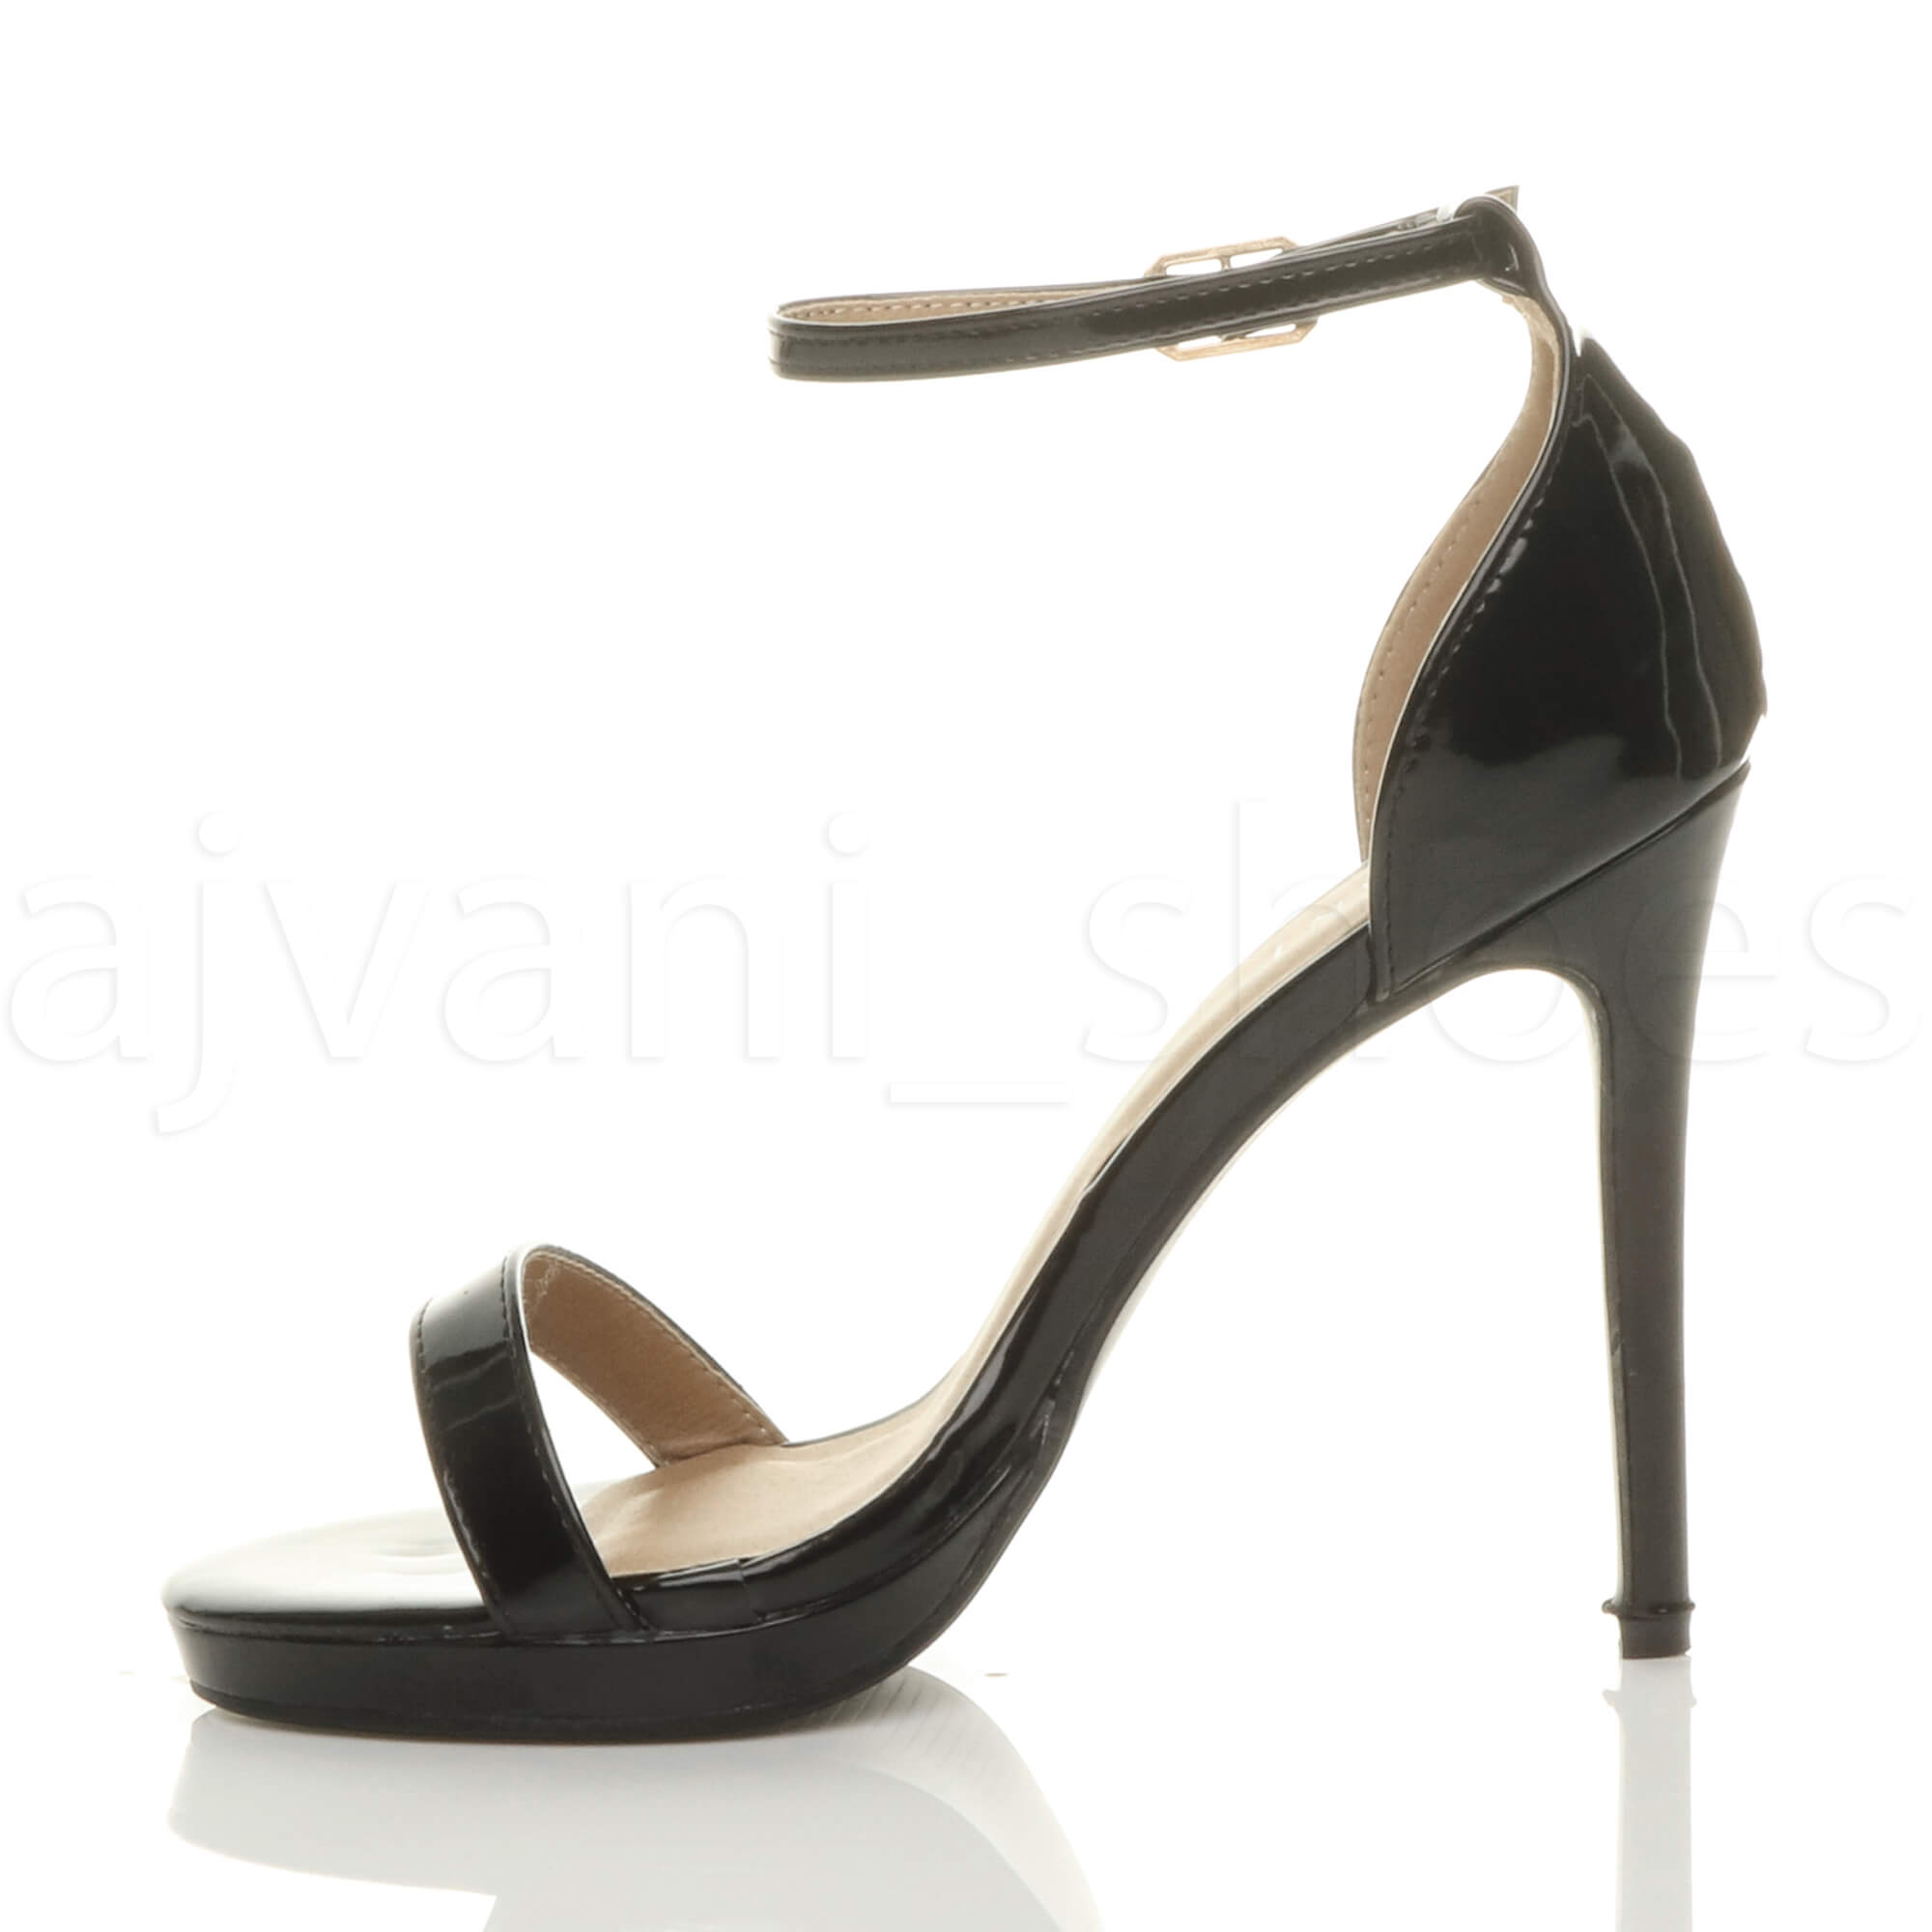 WOMENS-LADIES-HIGH-HEEL-PEEP-TOE-BARELY-THERE-ANKLE-STRAP-BUCKLE-SANDALS-SIZE thumbnail 17